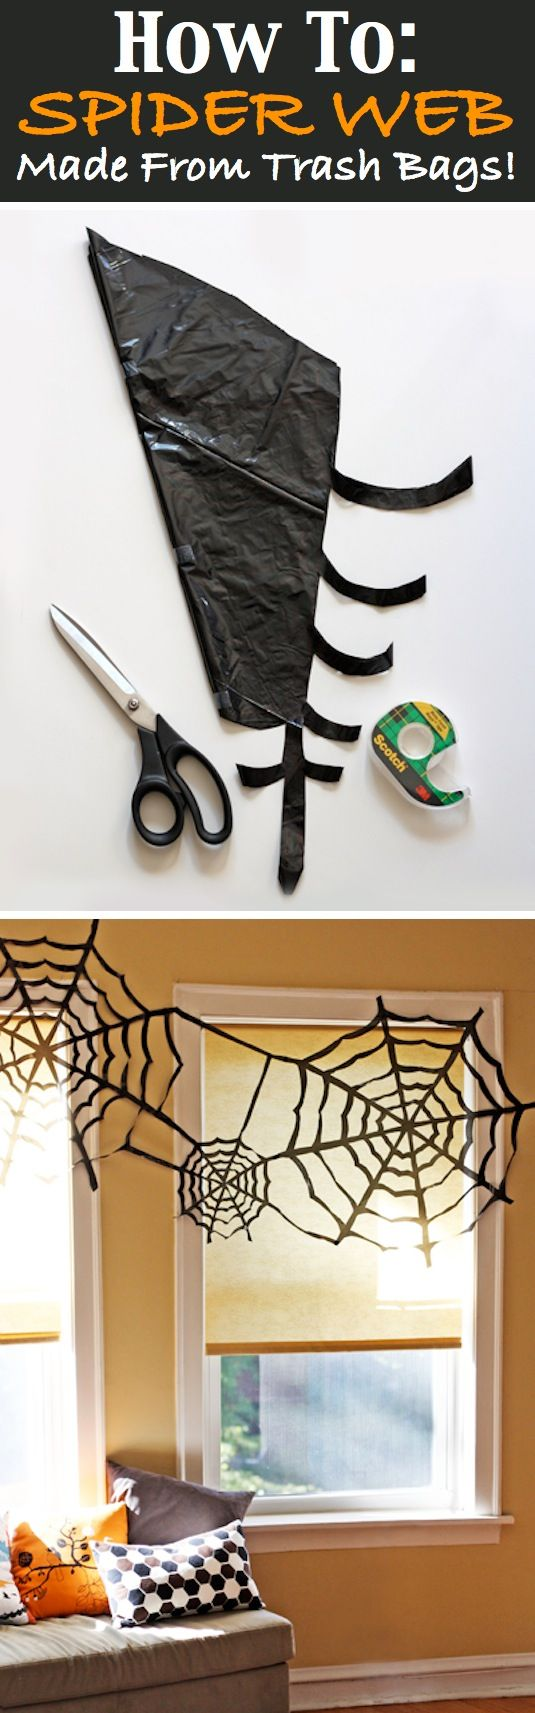 Homemade Halloween Decorations - http://@Mary Powers Powers Powers Powers Powers Powers Jenkinson-high